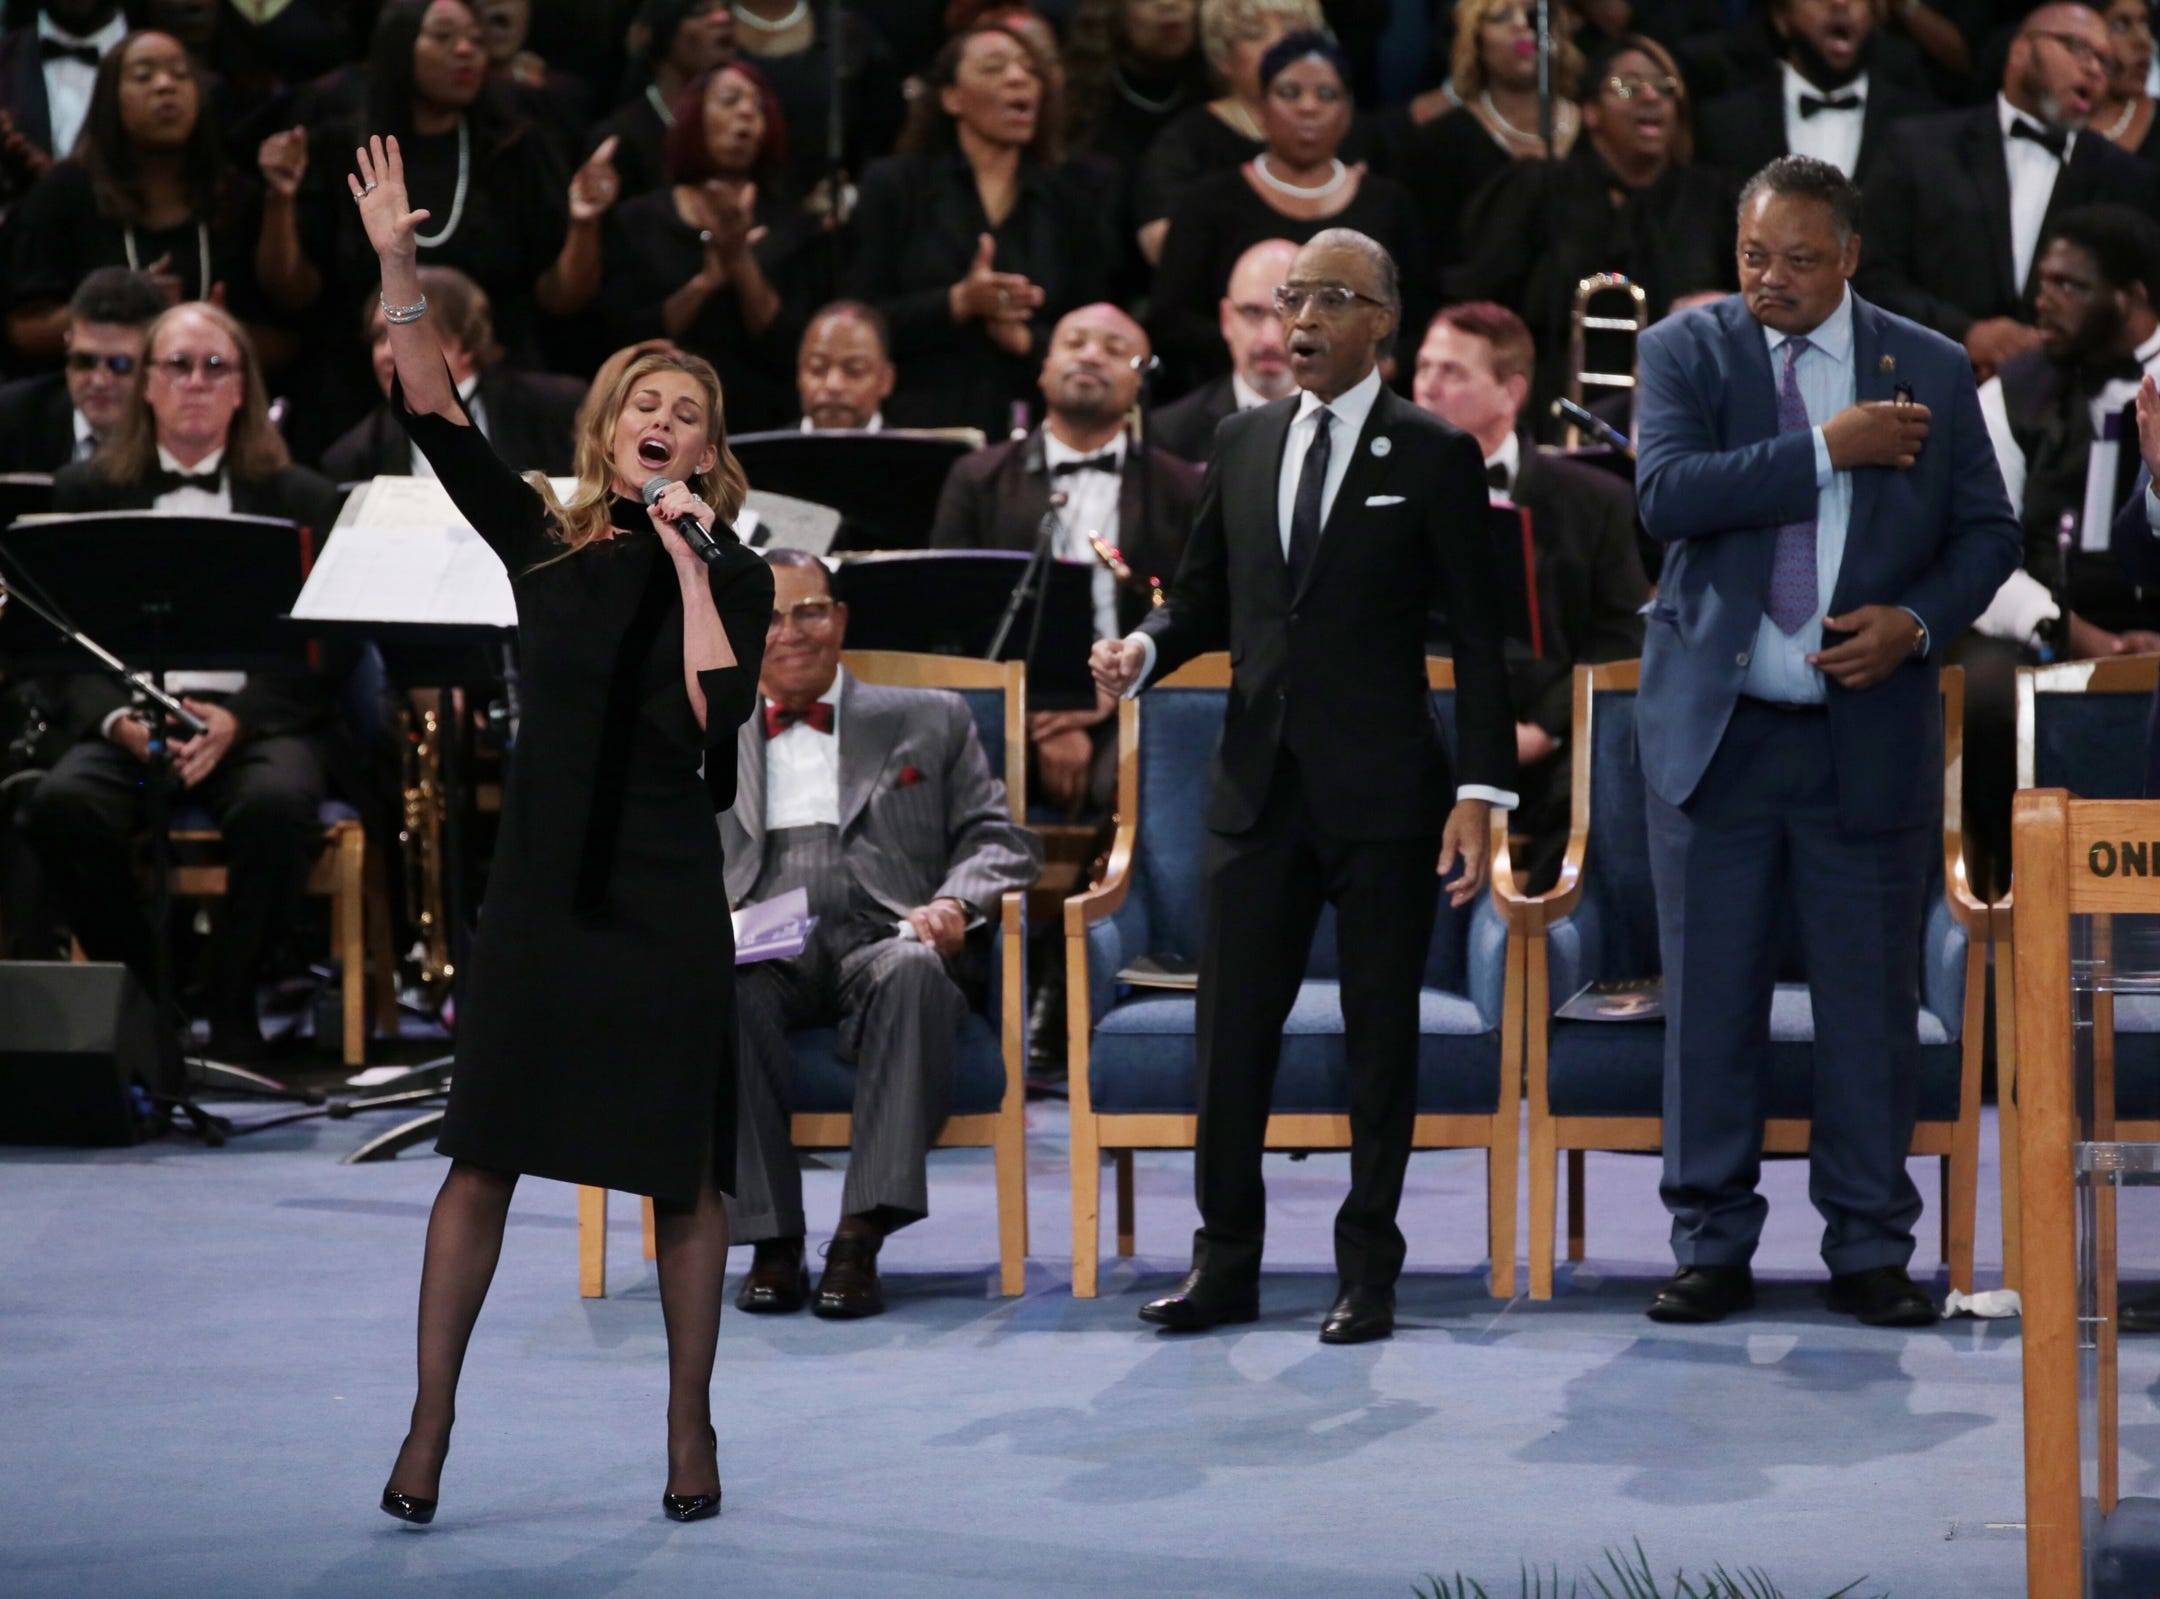 Singer Faith Hill performs during the funeral for the late Aretha Franklin at Greater Grace Temple in Detroit on Friday, August 31, 2018.